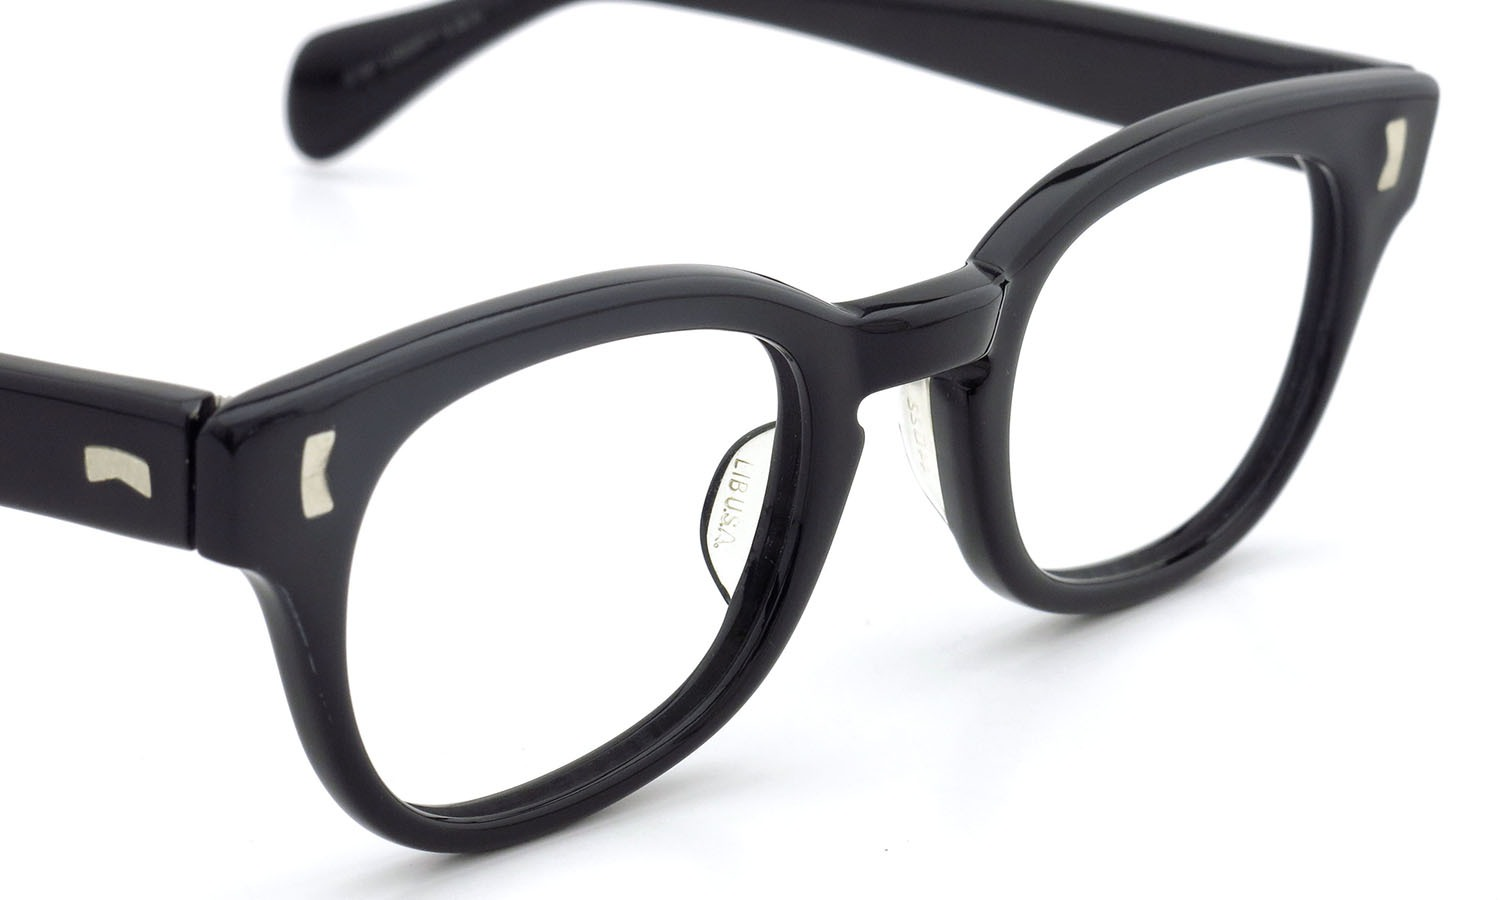 LIBERTY Optical 1950's vintage メガネ 9-PAR BLACK 44-20 6